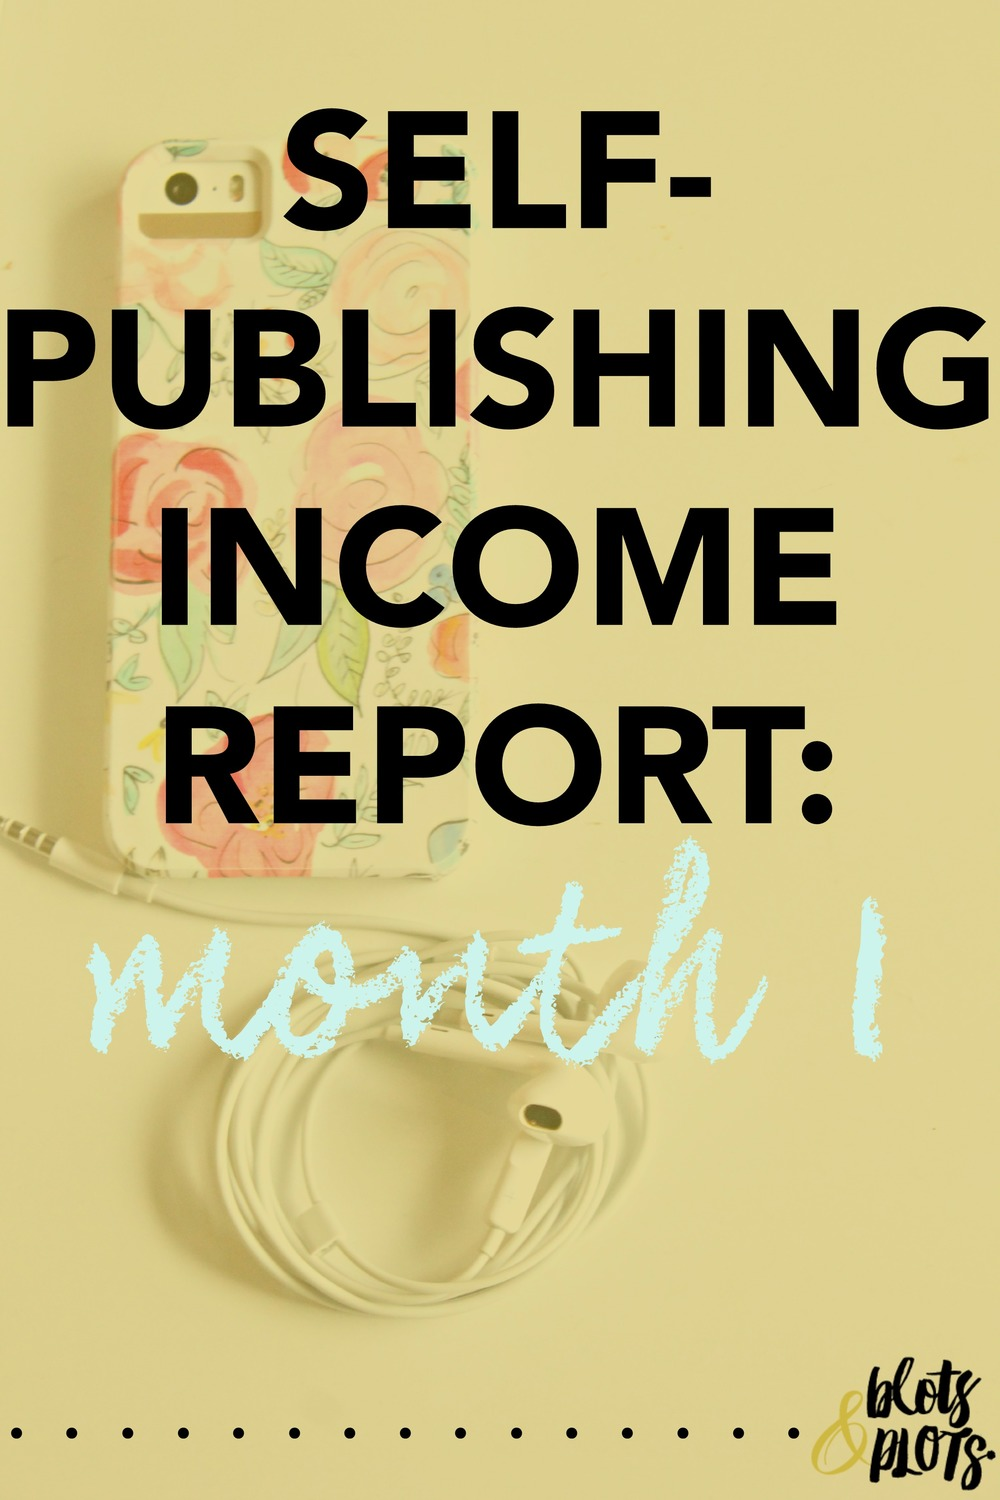 Self-Pub Income Report 1.jpg